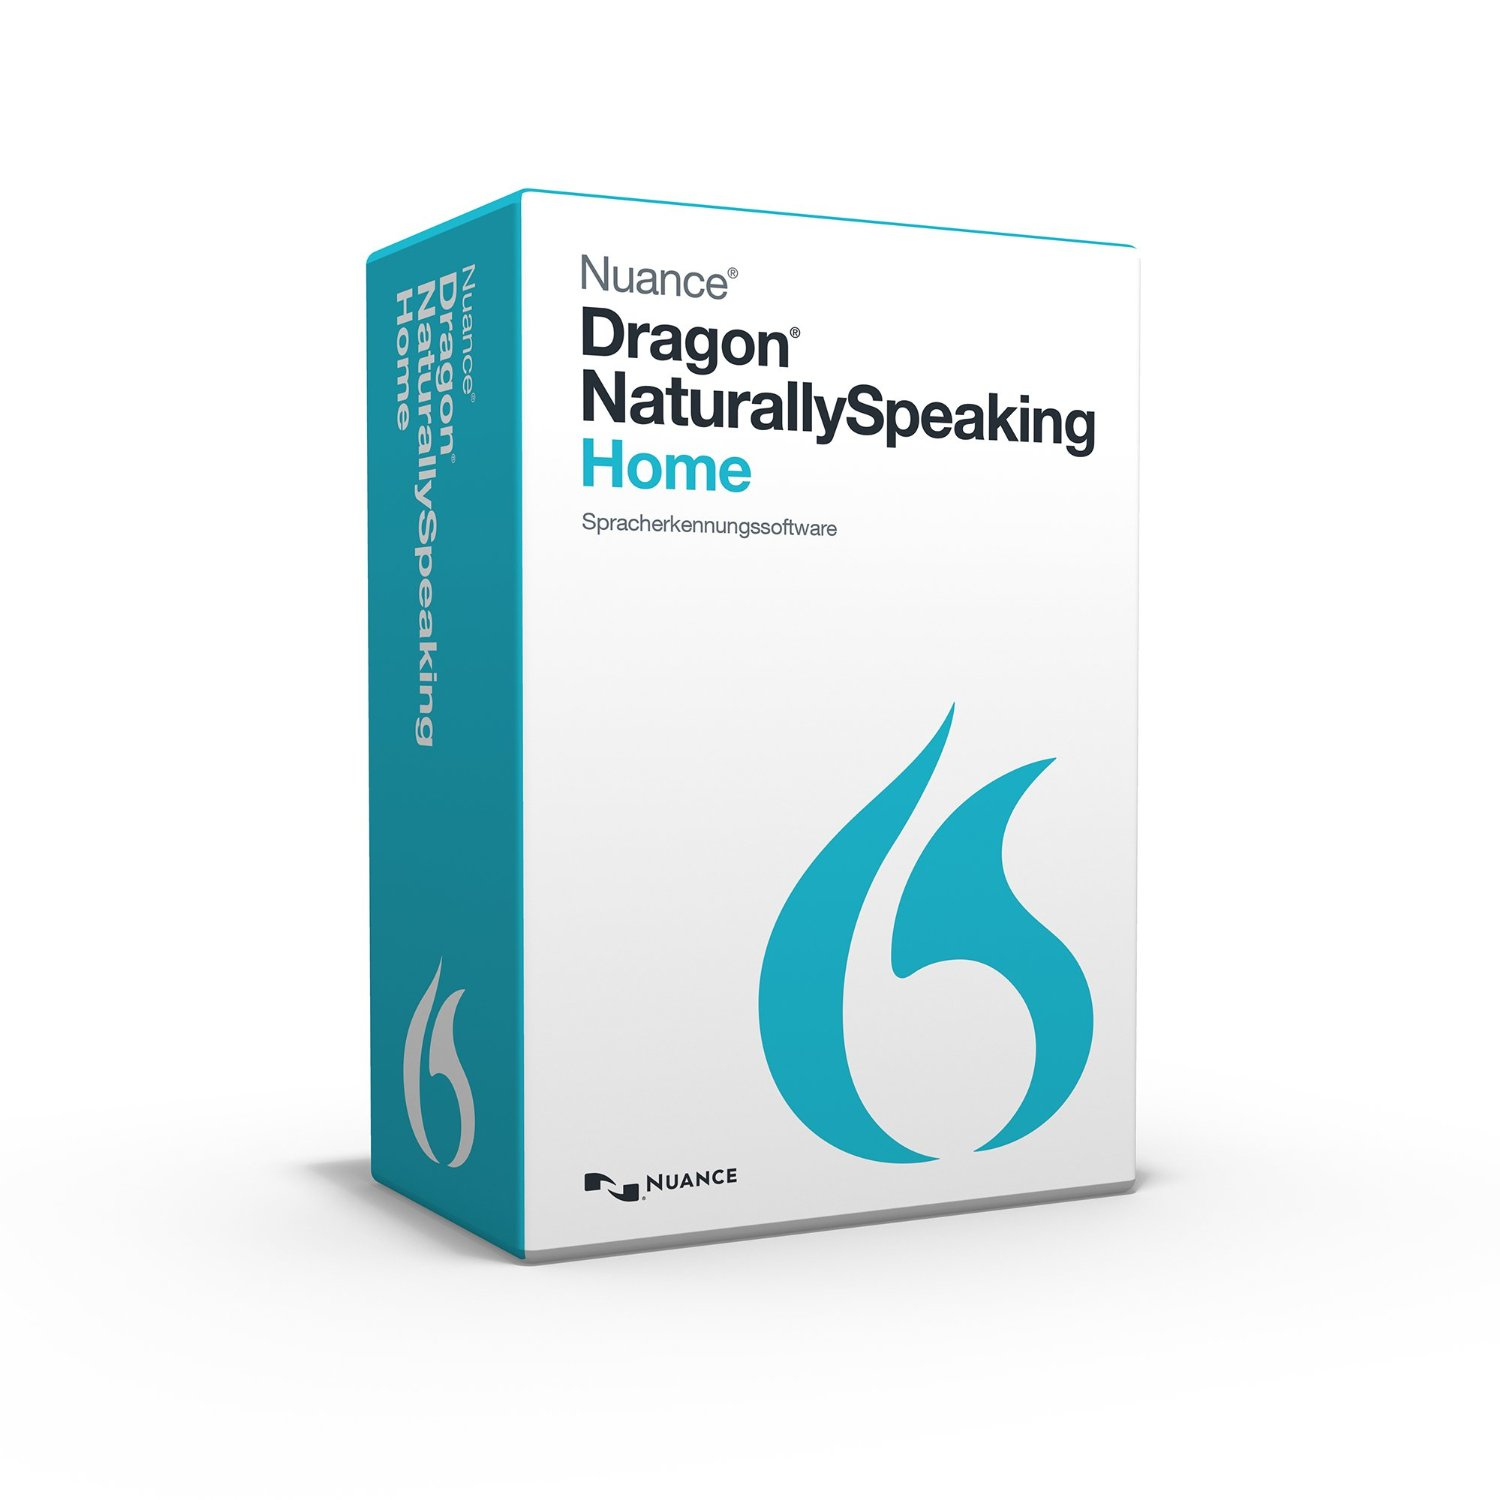 Dragon NaturallySpeaking Home 13.0 für 109,99 Euro